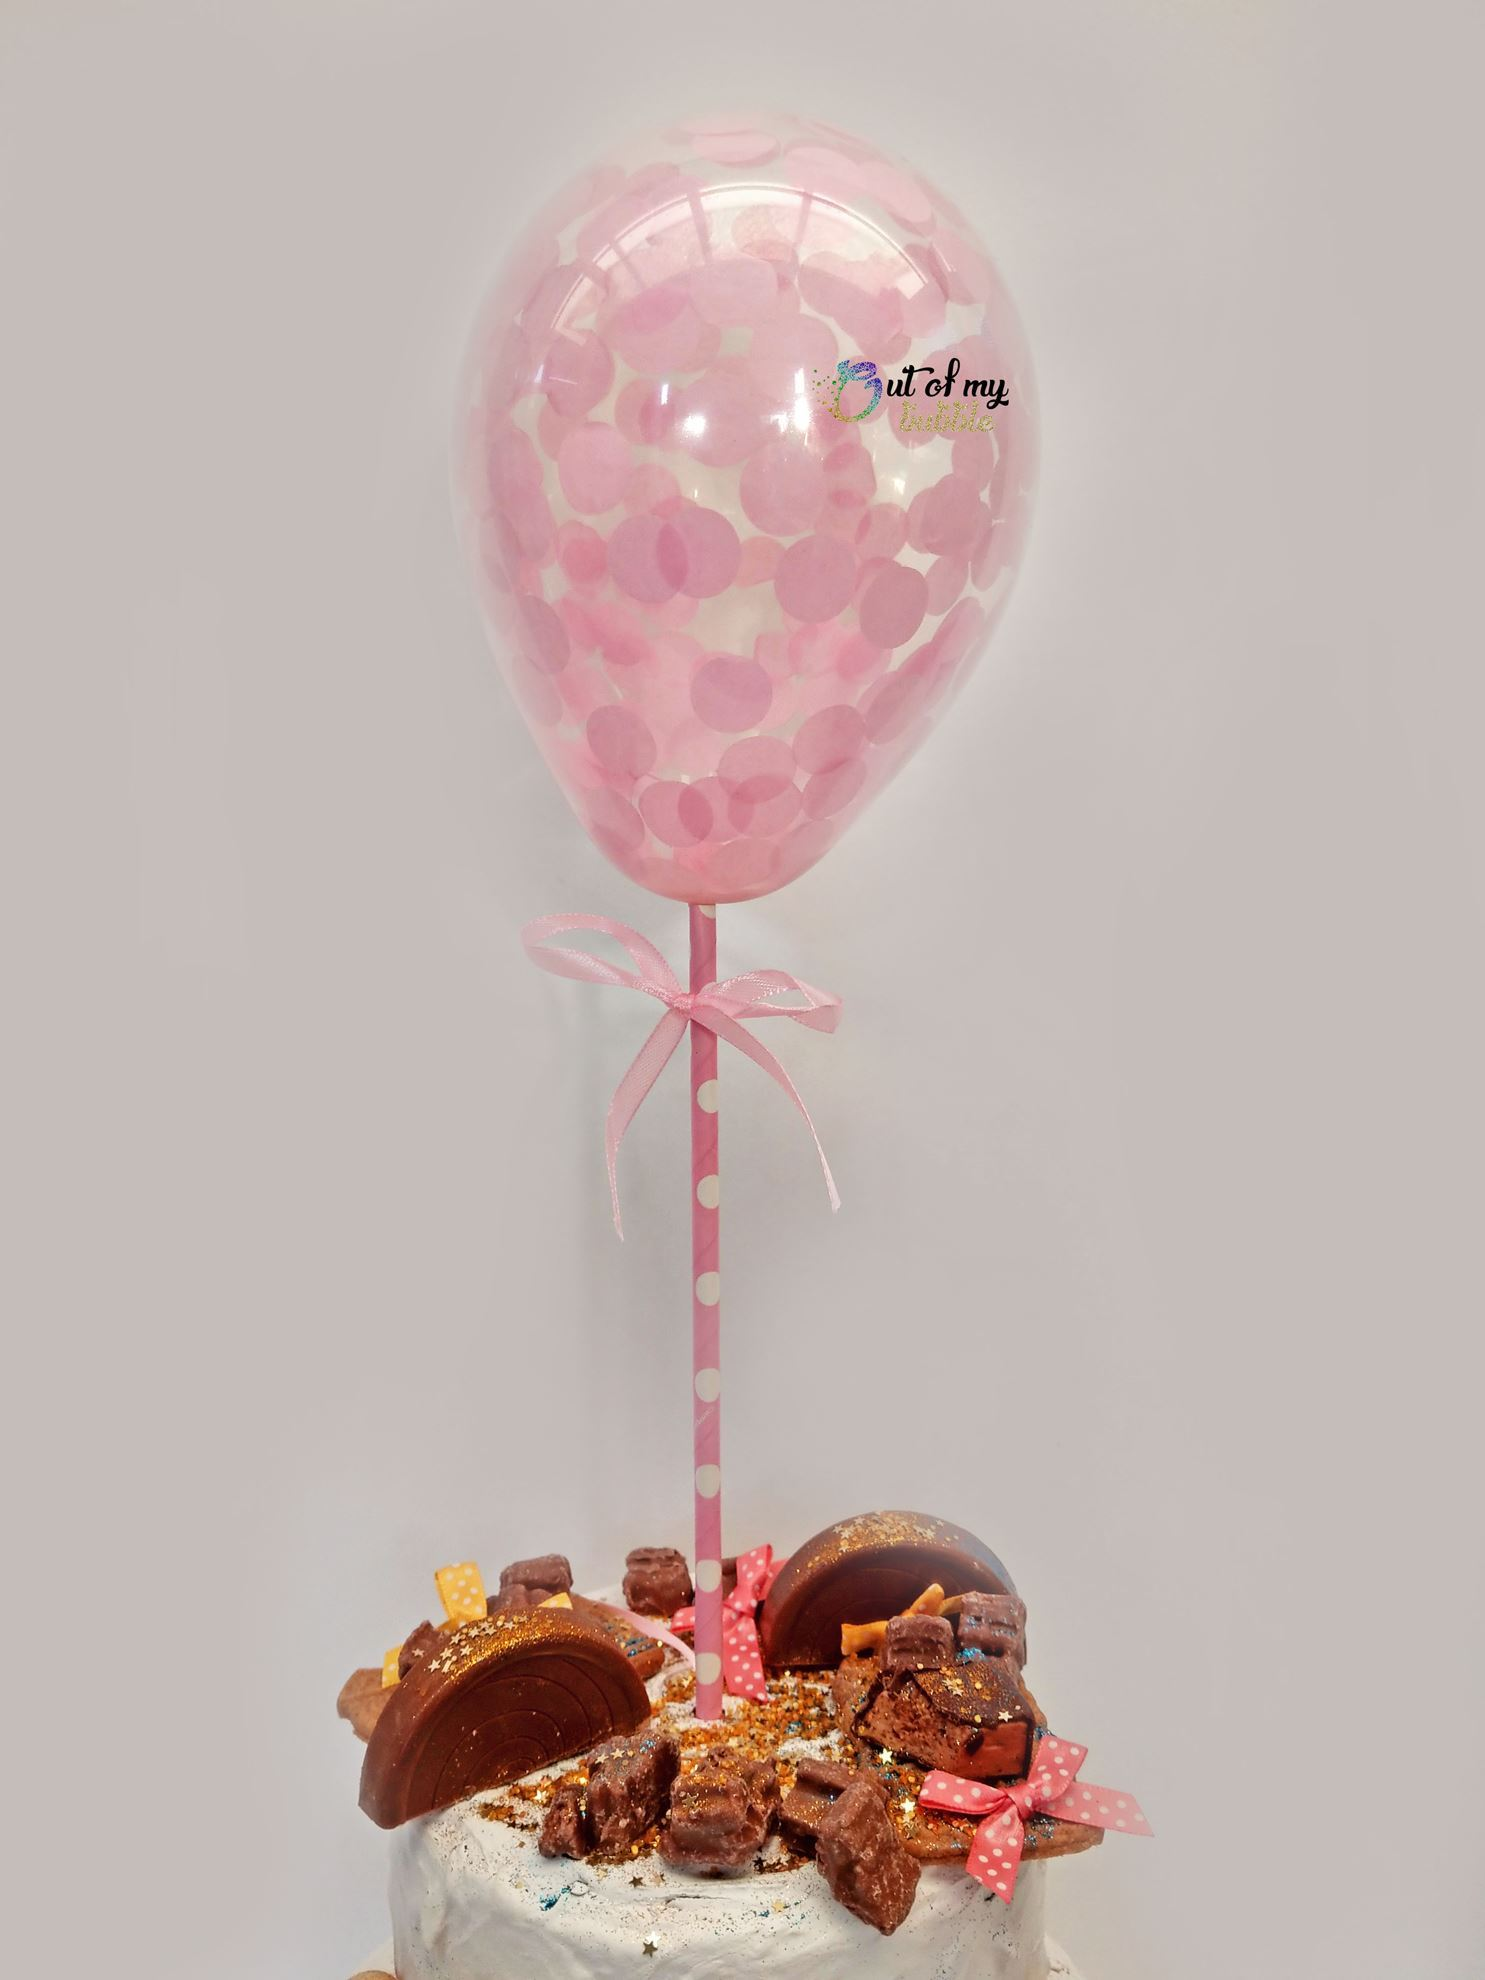 OutOfMyBubble. Blush Pink Confetti Balloon Cake Topper